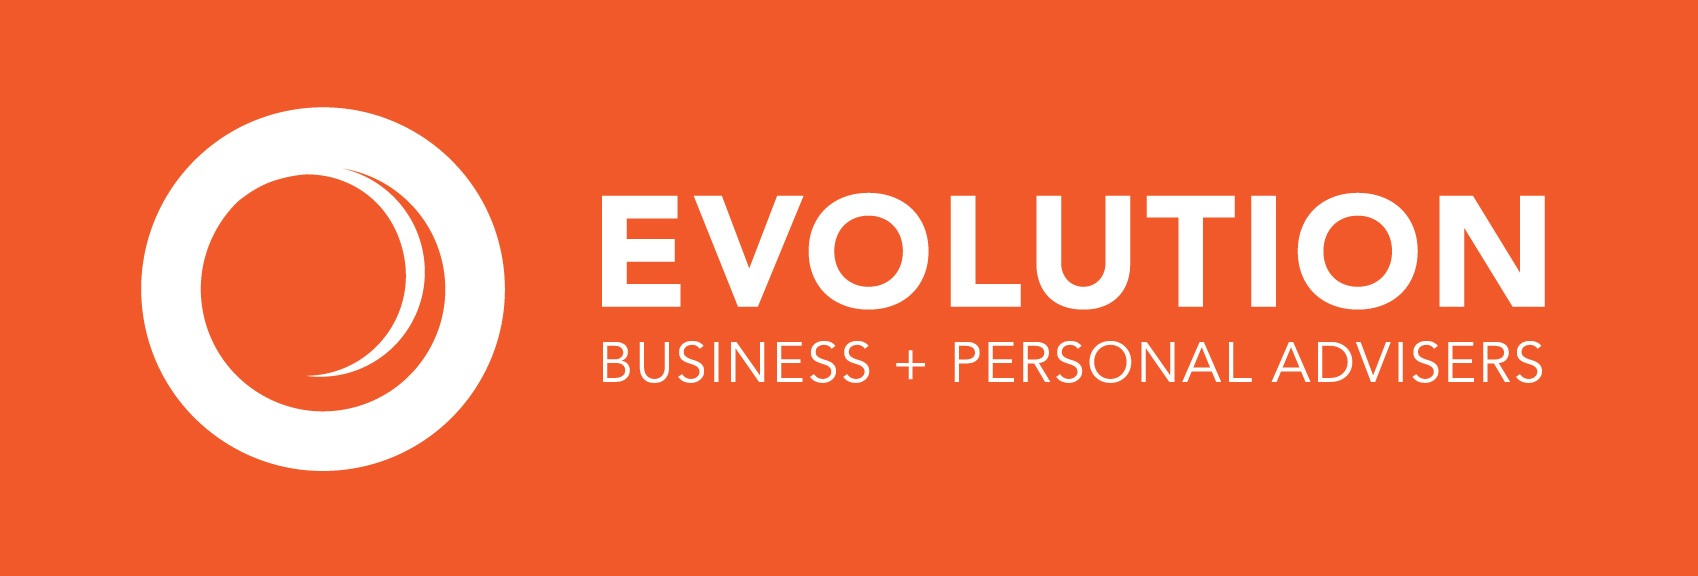 Evolution Business & Personal Advisers Pty Ltd assisted our business greatly.